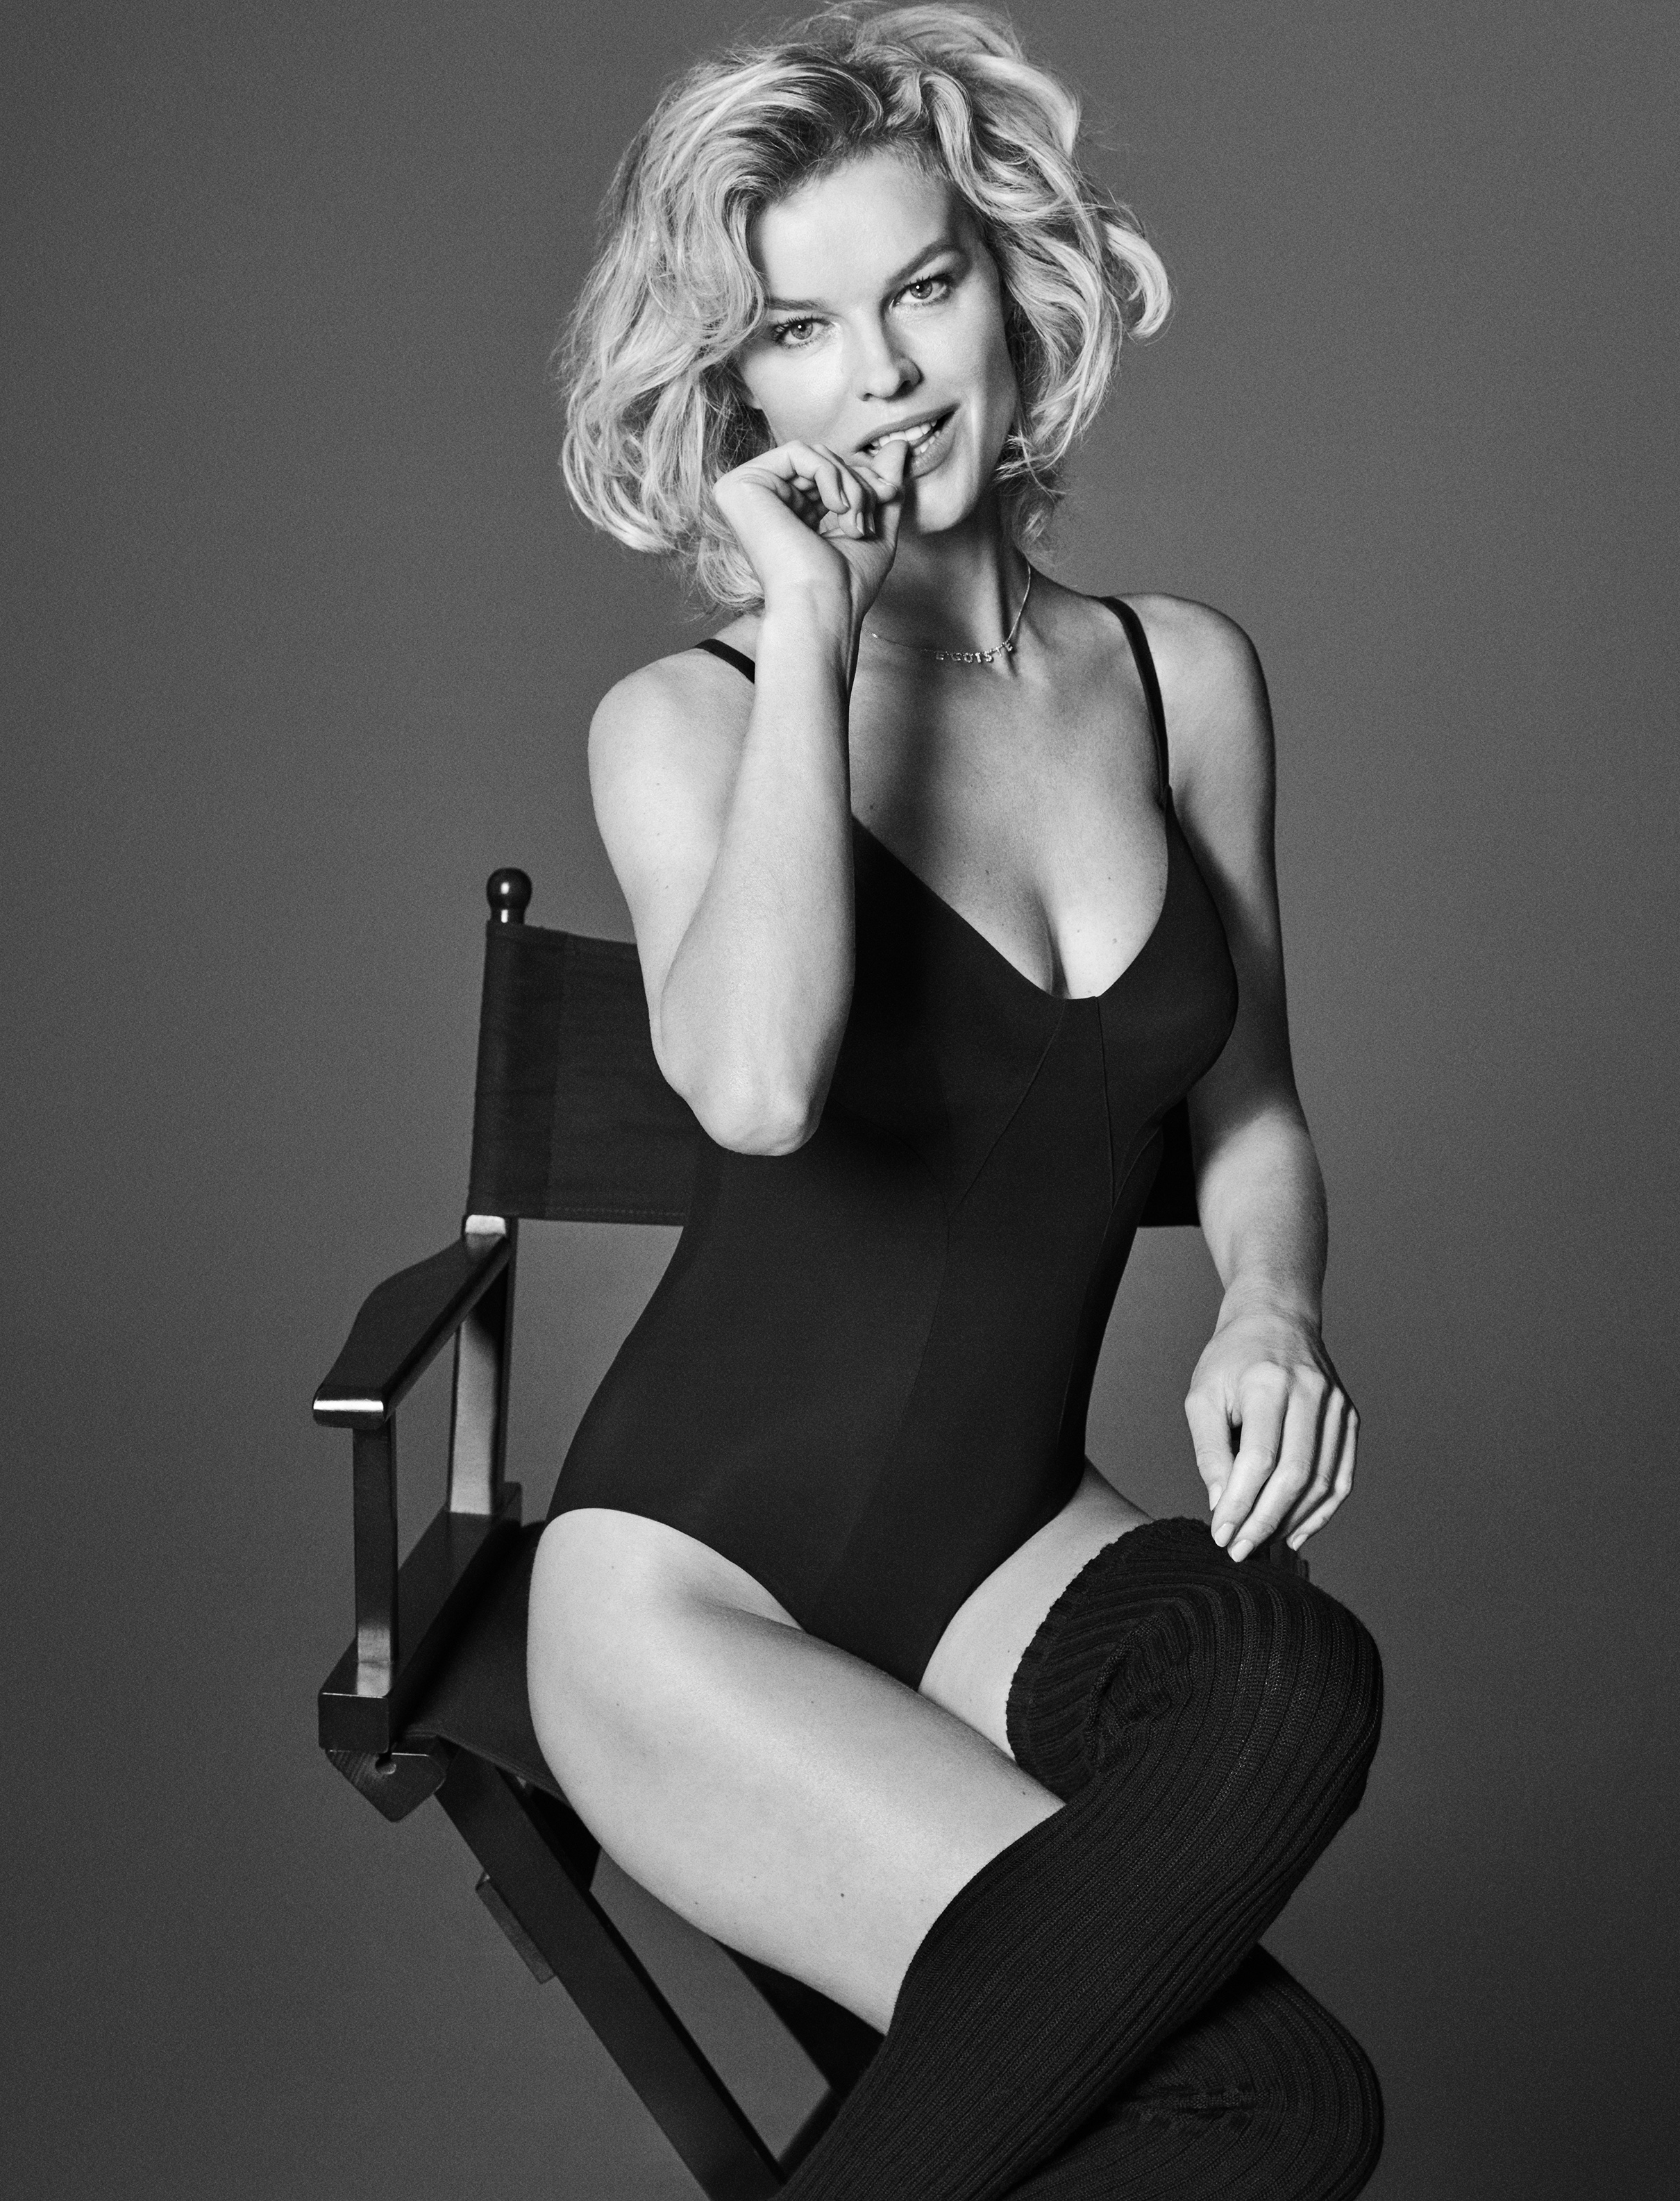 EVA HERZIGOVA IN THE NEW YAMAMAY CAMPAIGN - Zagreb West